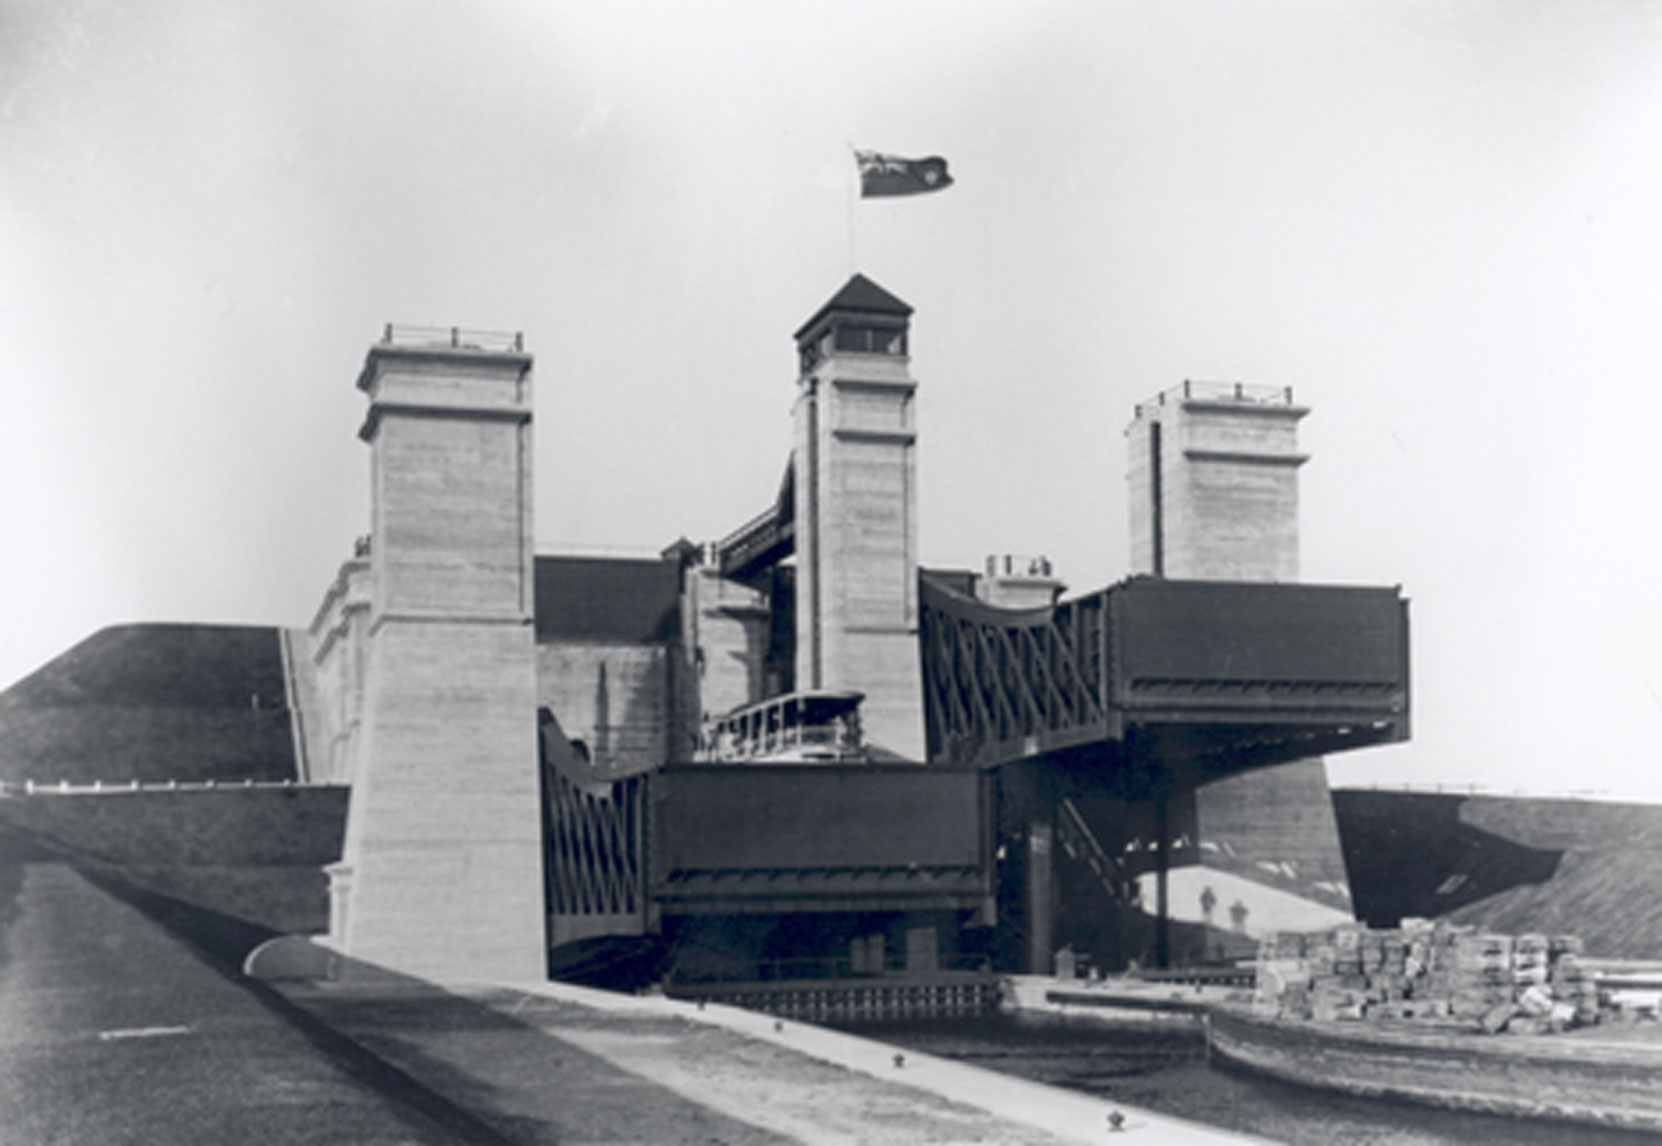 The finished Peterborough Hydraulic Lift Lock with Steamer and barge, 1904. Construction of this lock required 19,879 cubic meters of concrete, much of it made with cement supplied by the Lakefield Portland Cement Company. The Peterborough Lift Lock is still operational and has been designated a Canadian Heritage Site. (Photo courtesy of Parks Canada, Trent-Severn Waterway Historic Photo Collection)